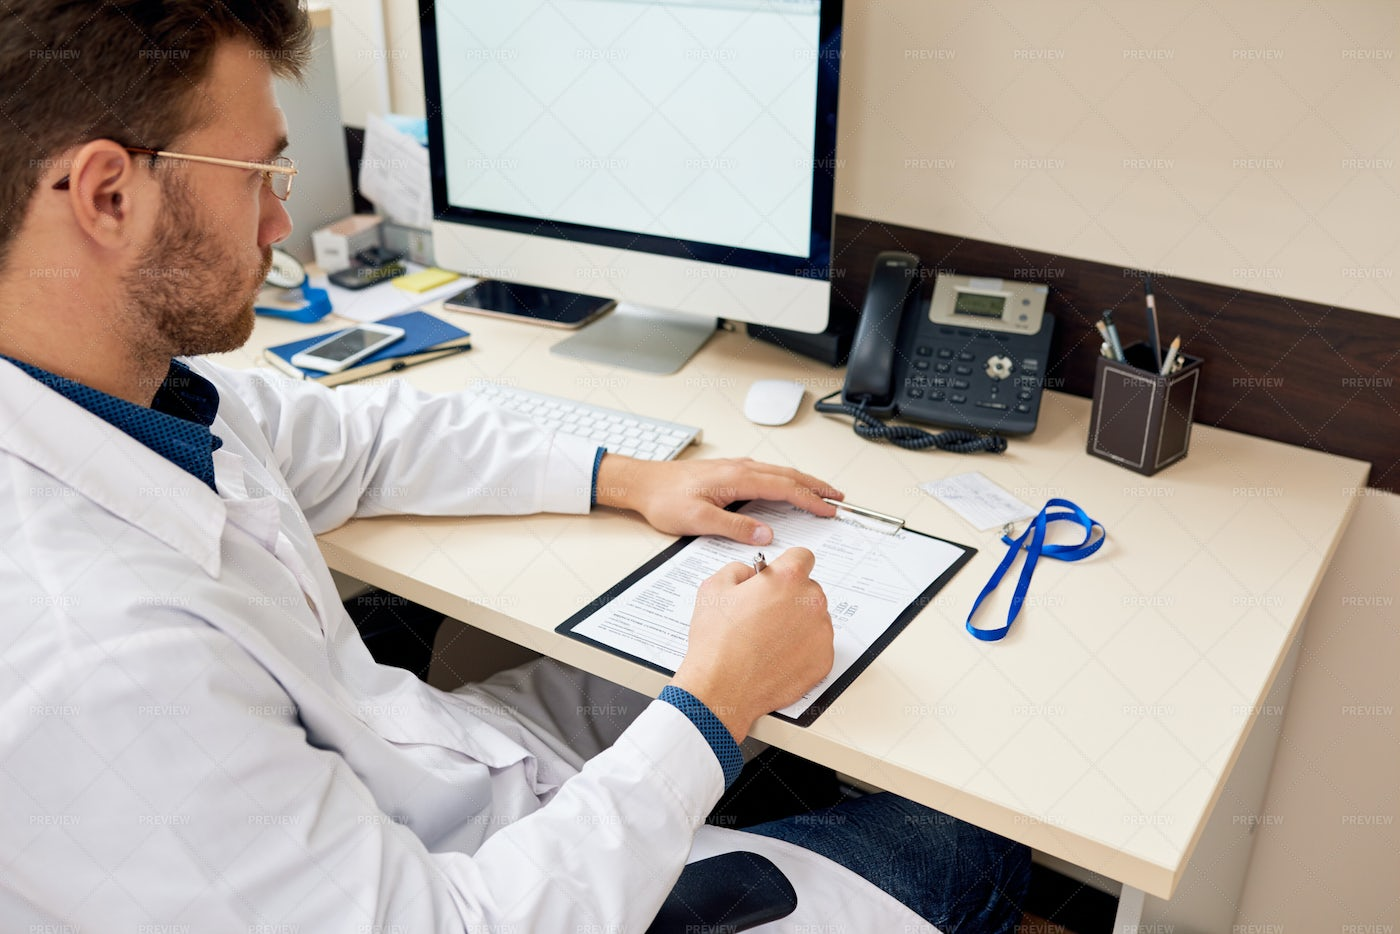 Doctor Working At Desk In Office: Stock Photos